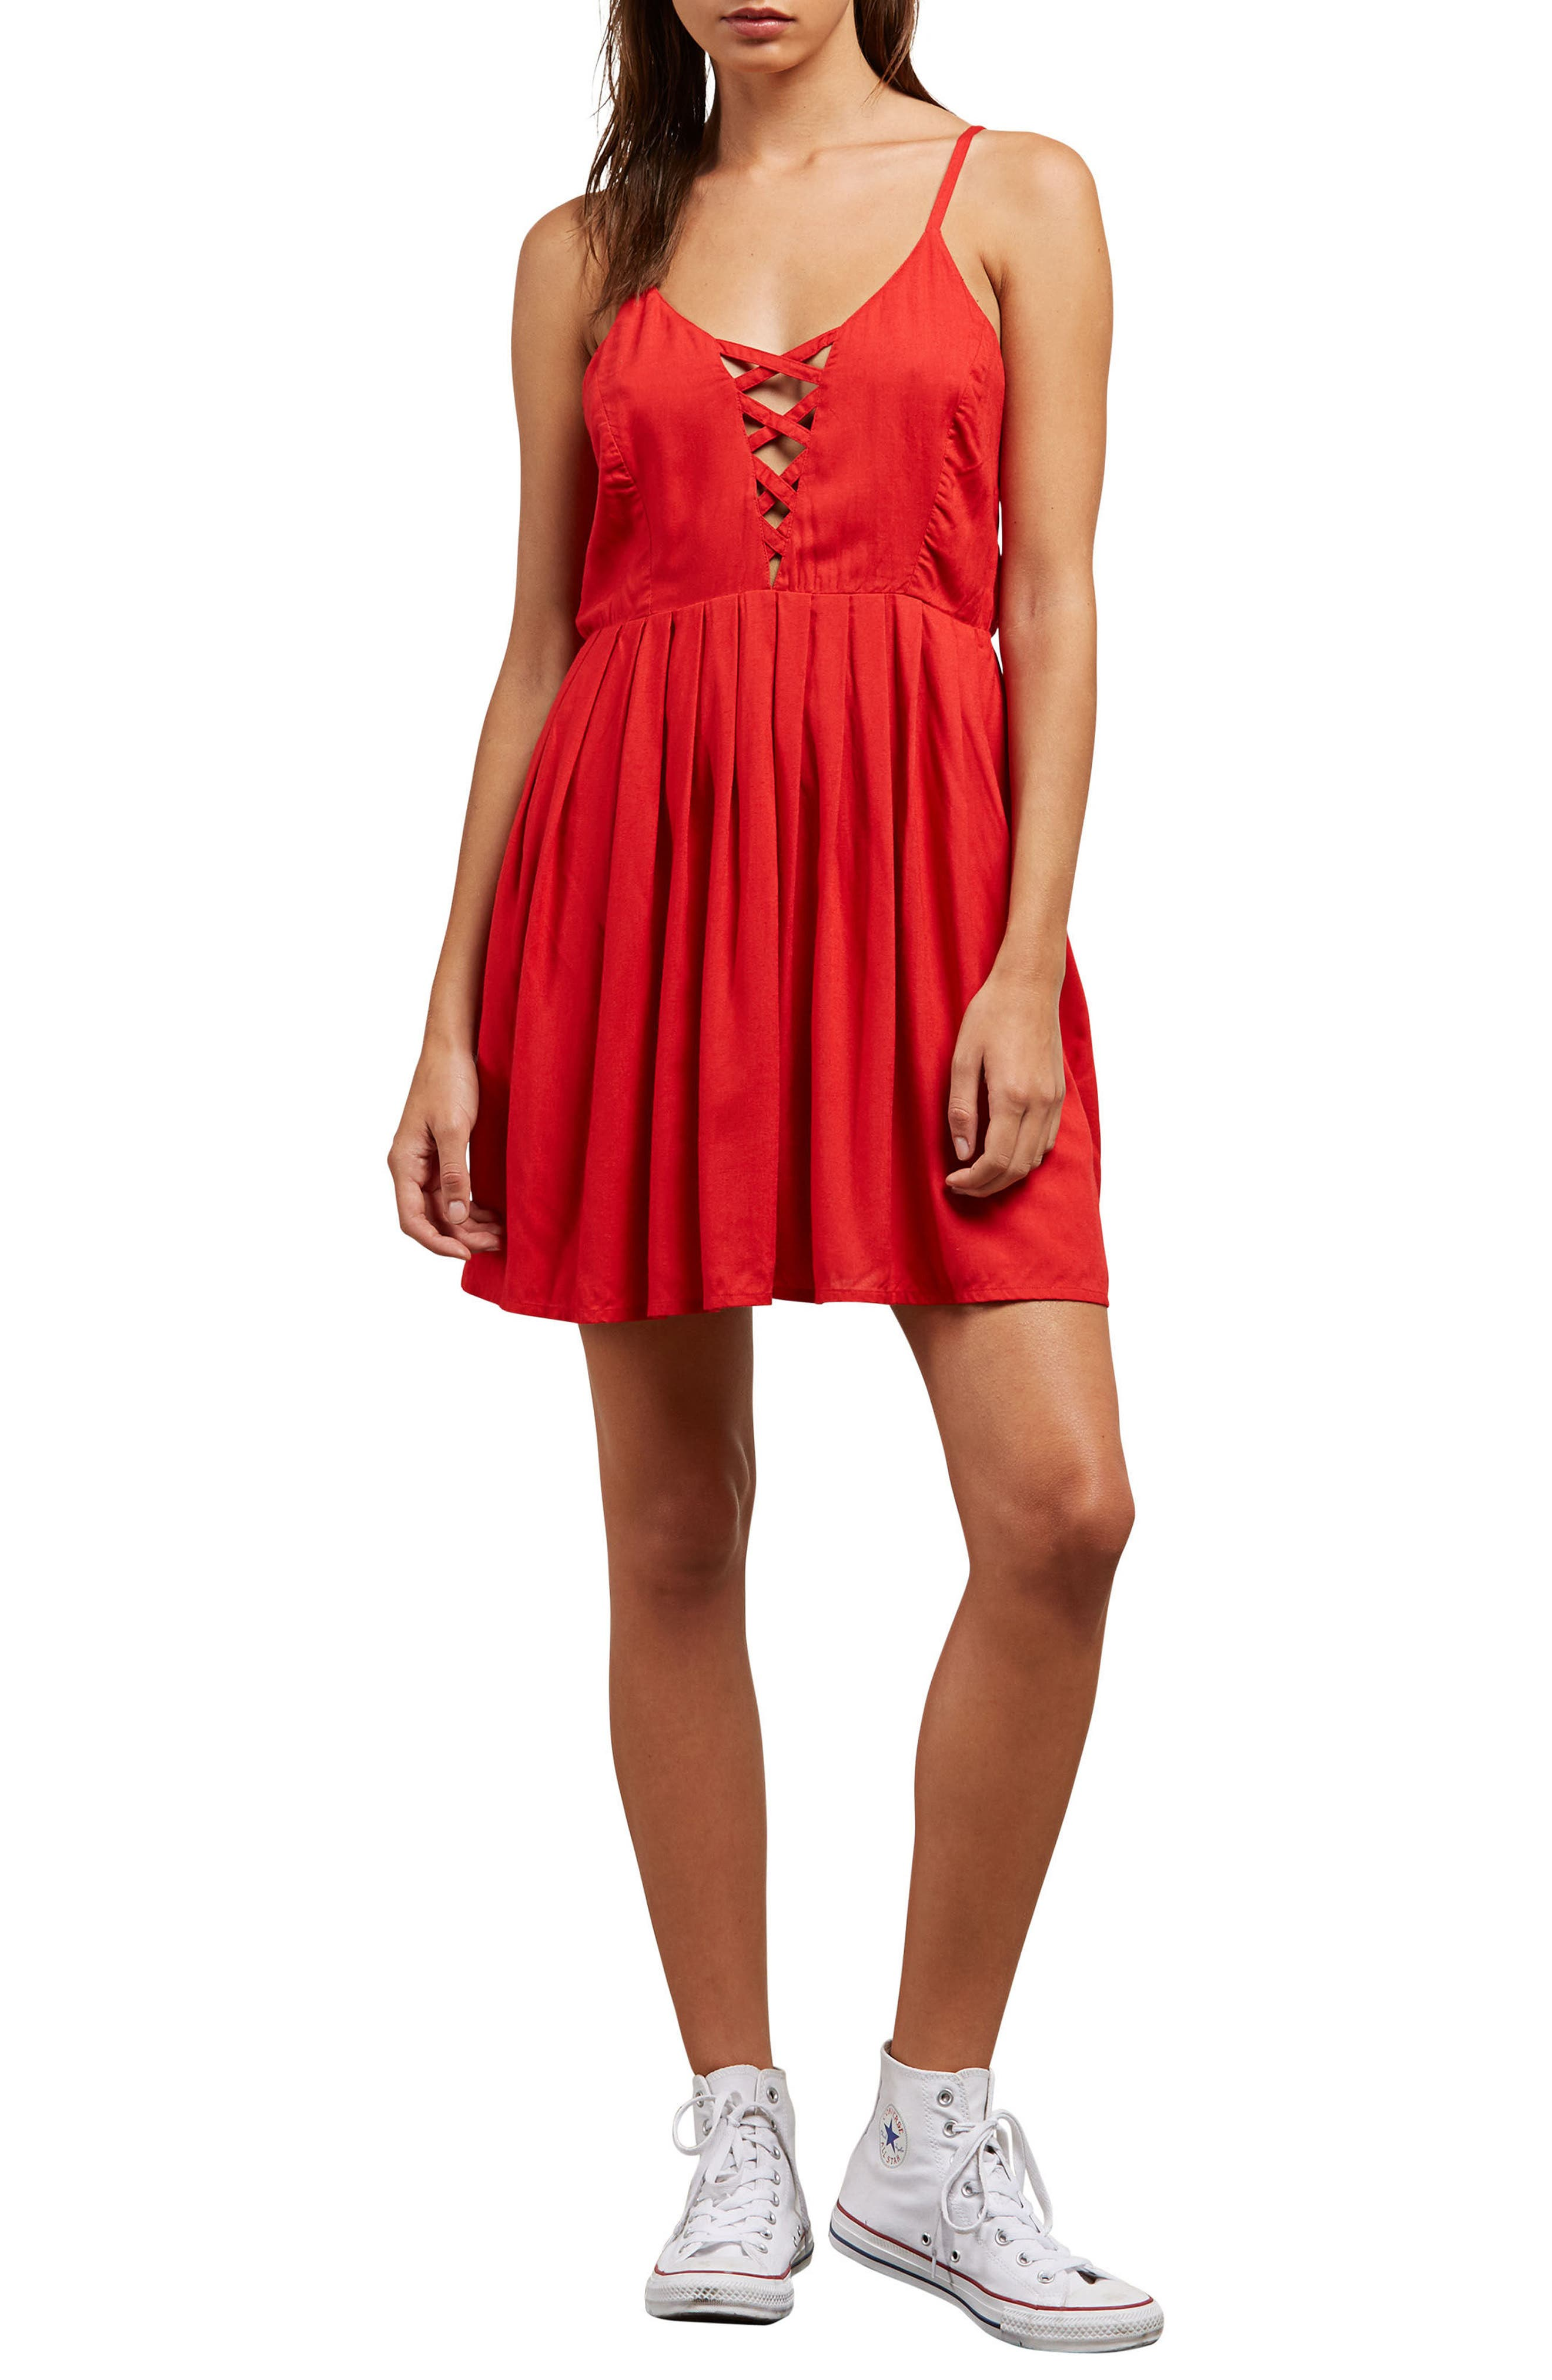 Cross Paths Sundress,                         Main,                         color, Red Rad